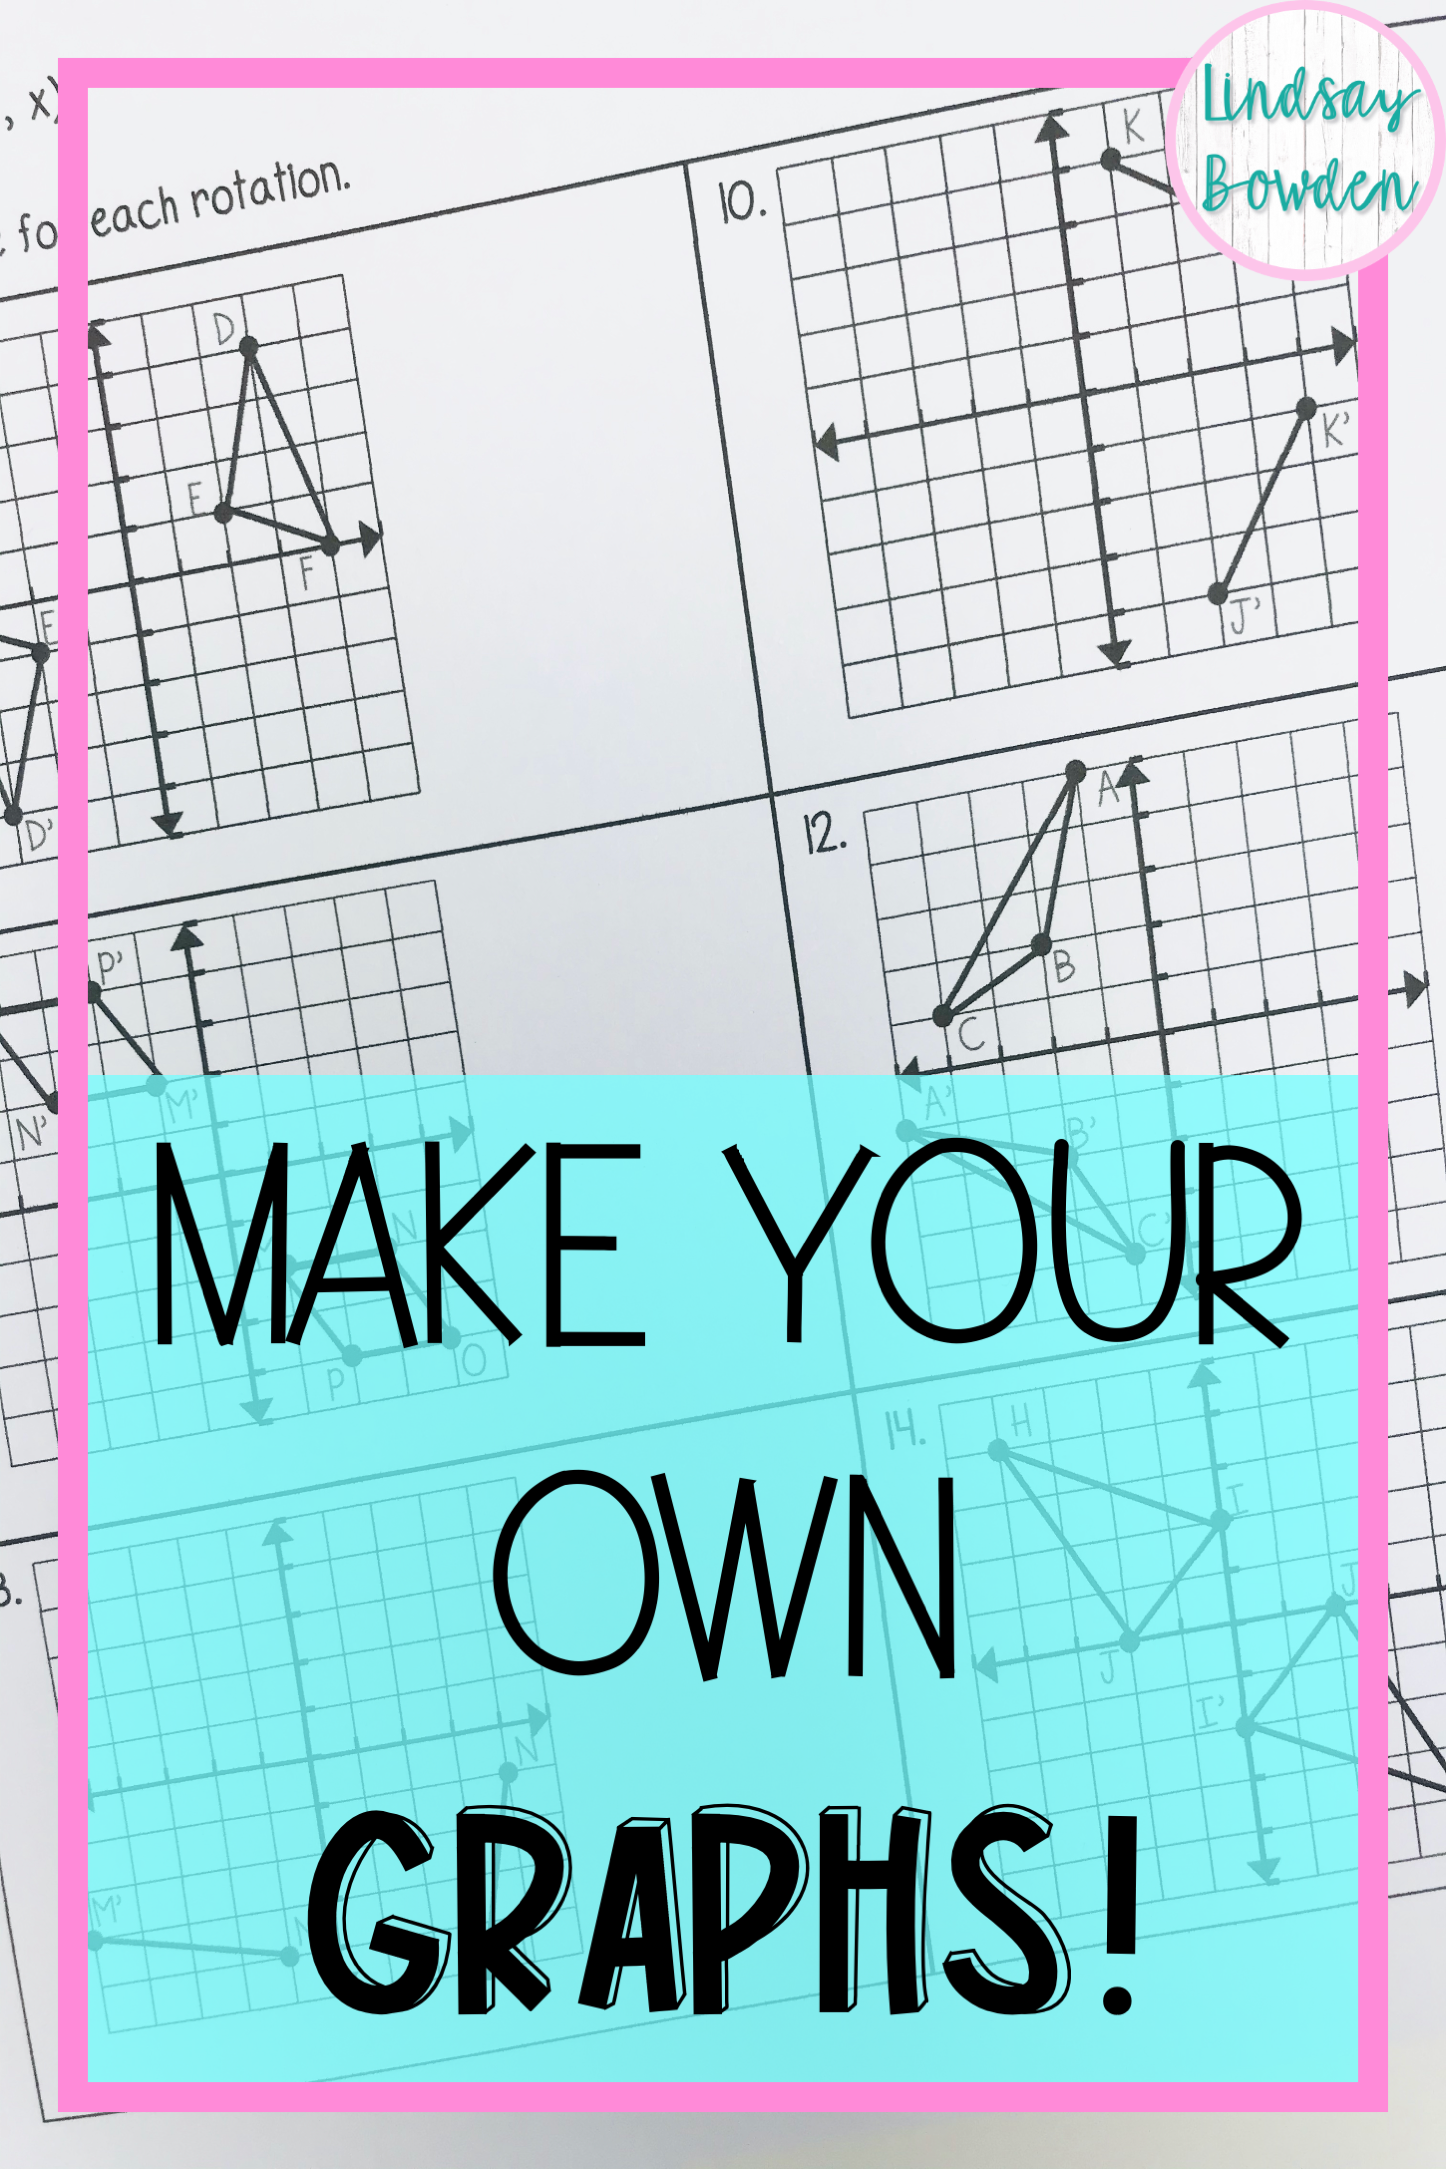 How To Make Your Own Graphs Using Powerpoint